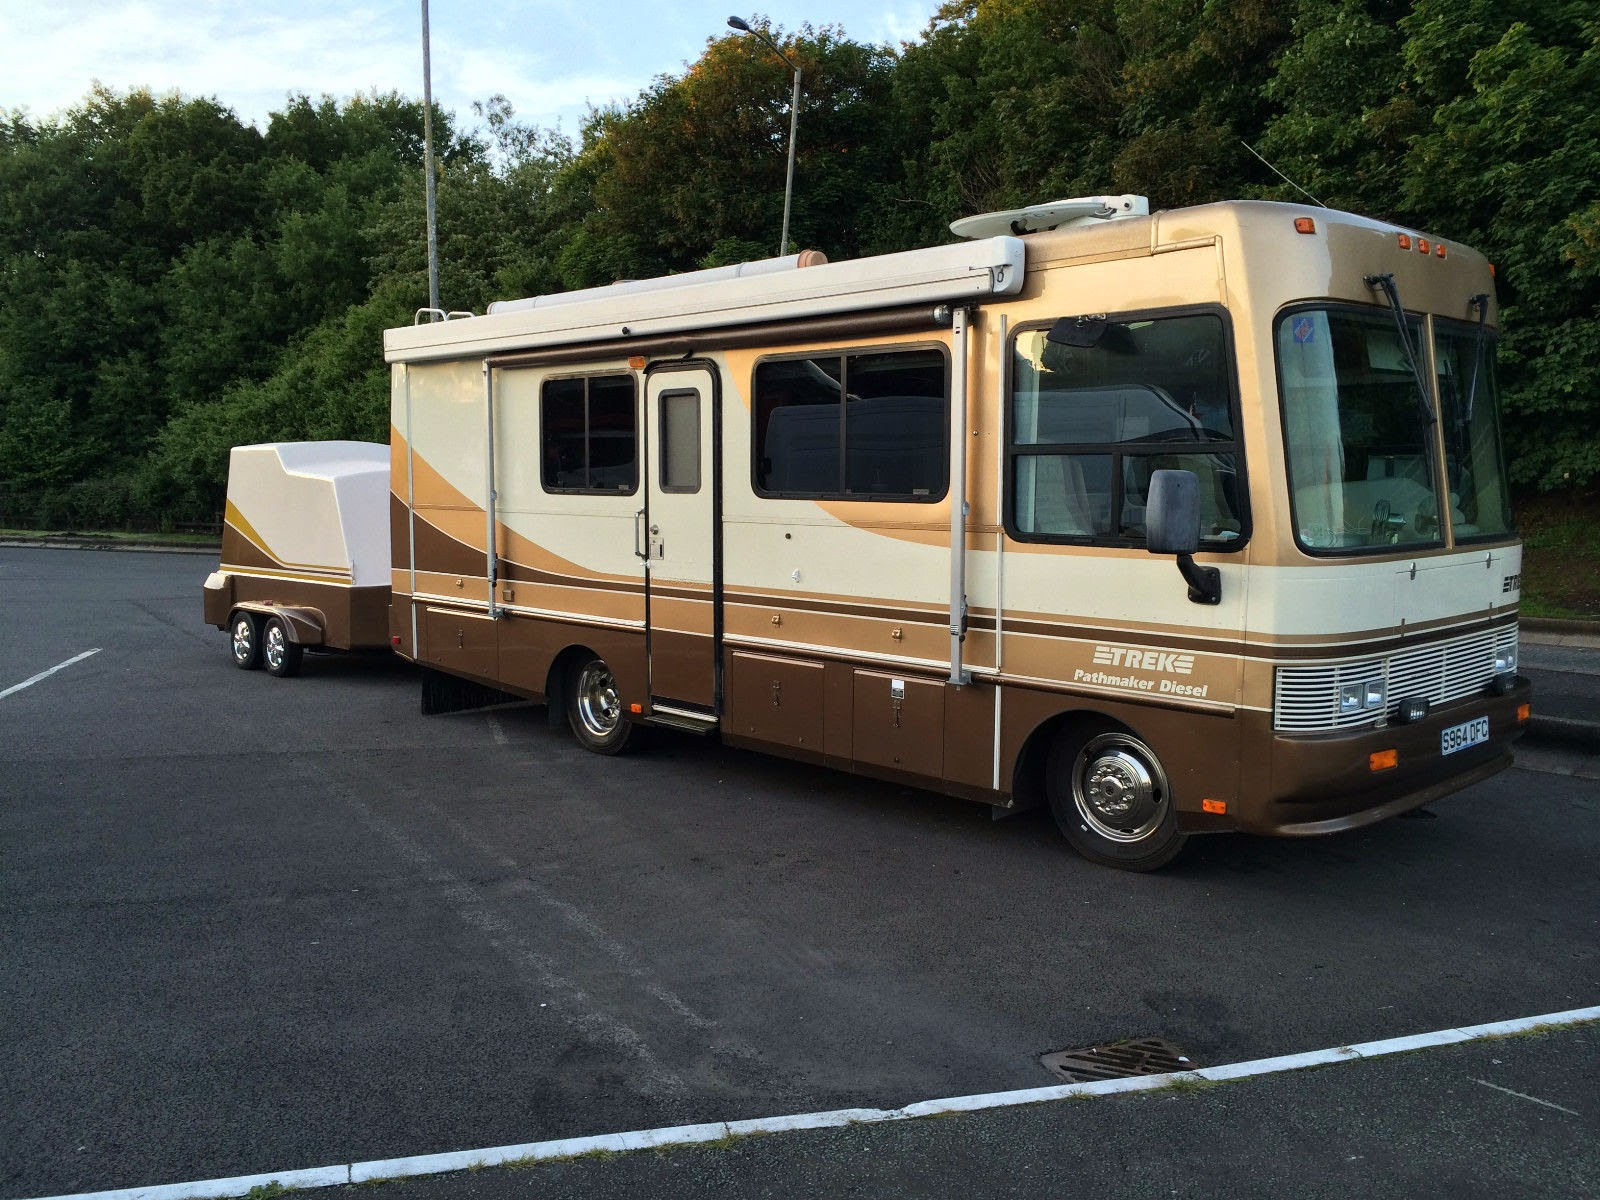 Used Motorhomes For Sale By Owner >> Used RVs 1998 Monaco Safari Trek Pathfinder For Sale by Owner